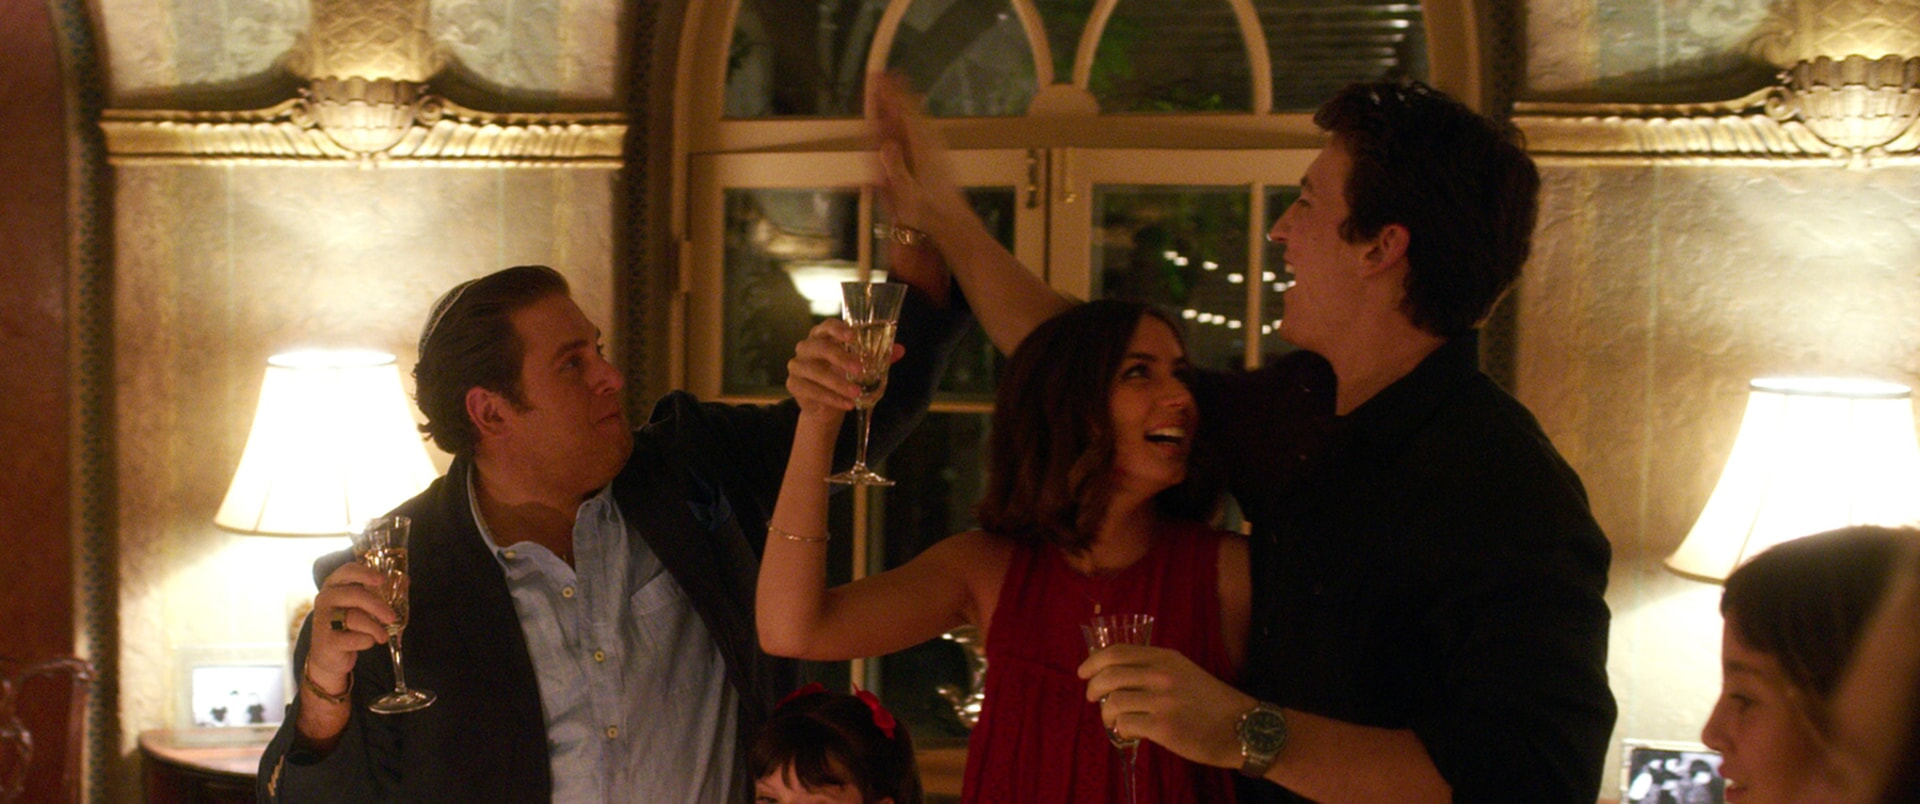 """JONAH HILL as Efraim, ANA DE ARMAS as Iz and MILES TELLER as David in Warner Bros. Pictures' comedic drama (based on true events) """"WAR DOGS,"""" a Warner Bros. Pictures release."""